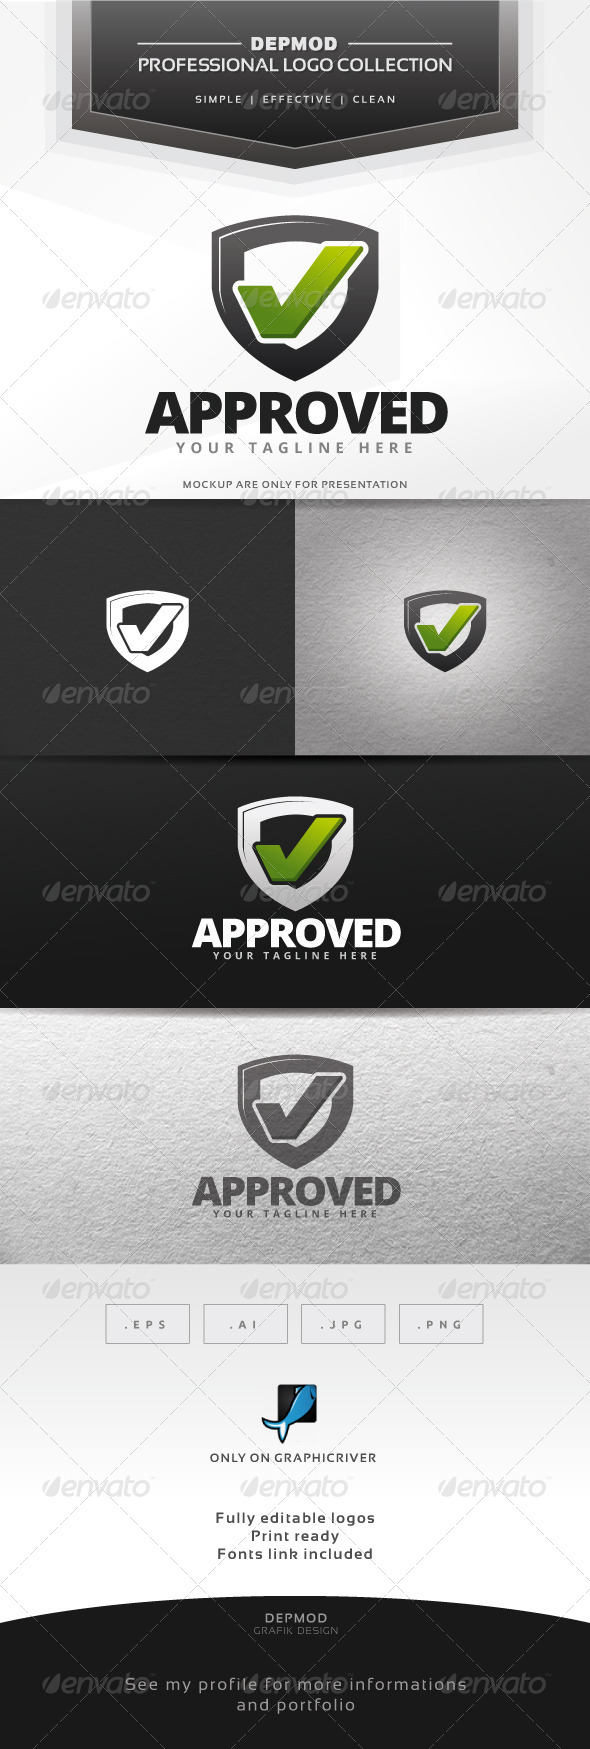 GraphicRiver Approved Logo 7012311